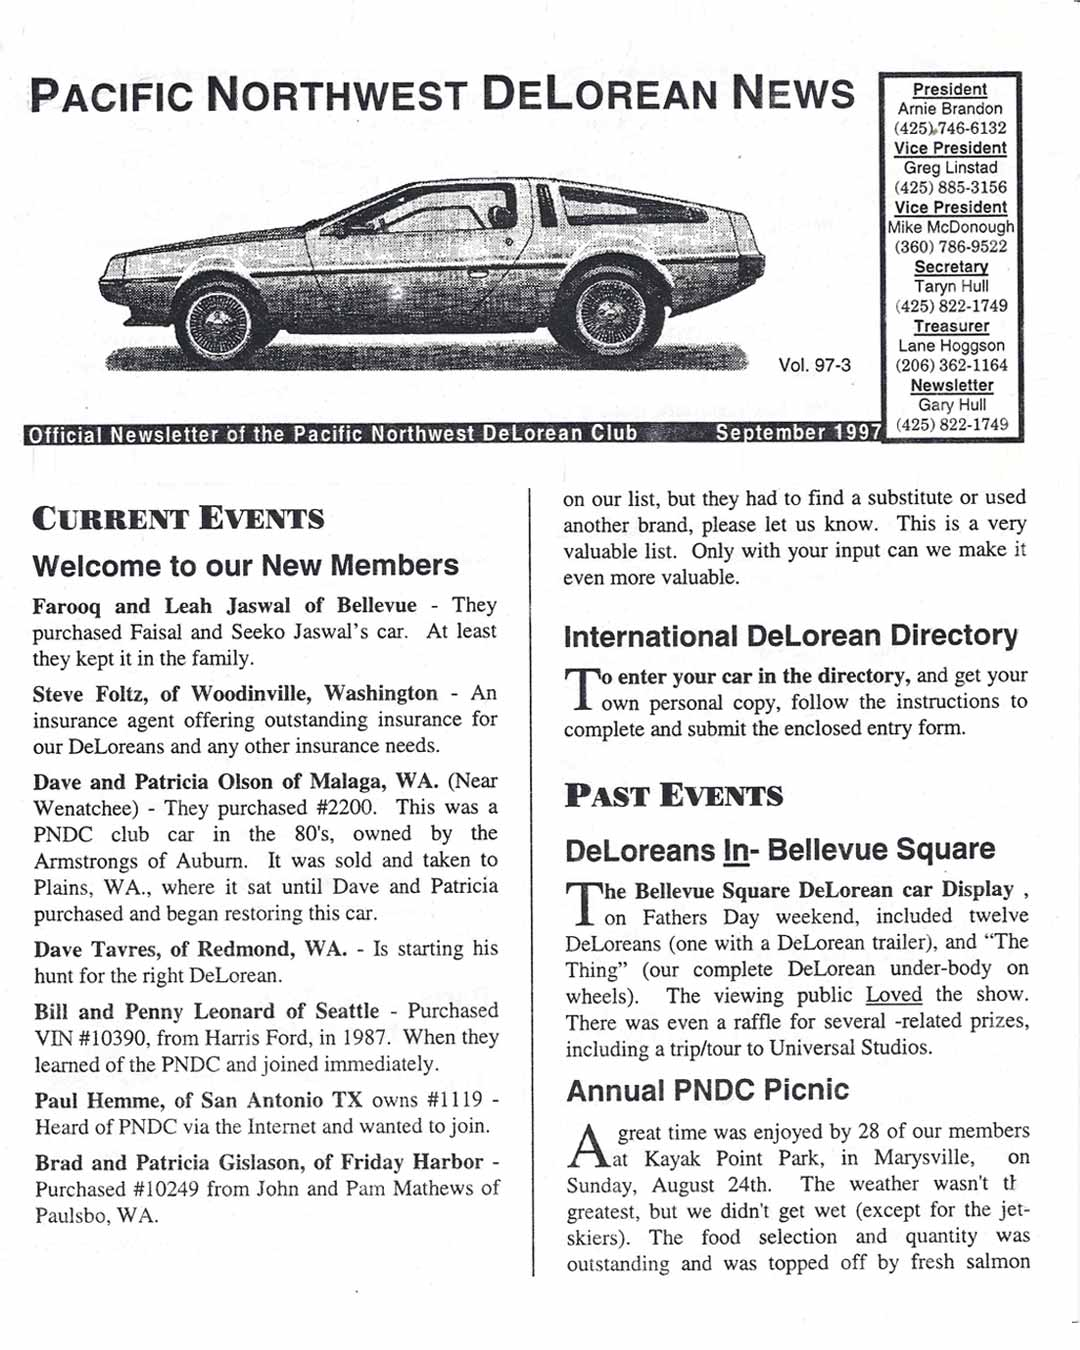 Pacific Northwest DeLorean Club newsletter from September 1997 | DMC10515.com